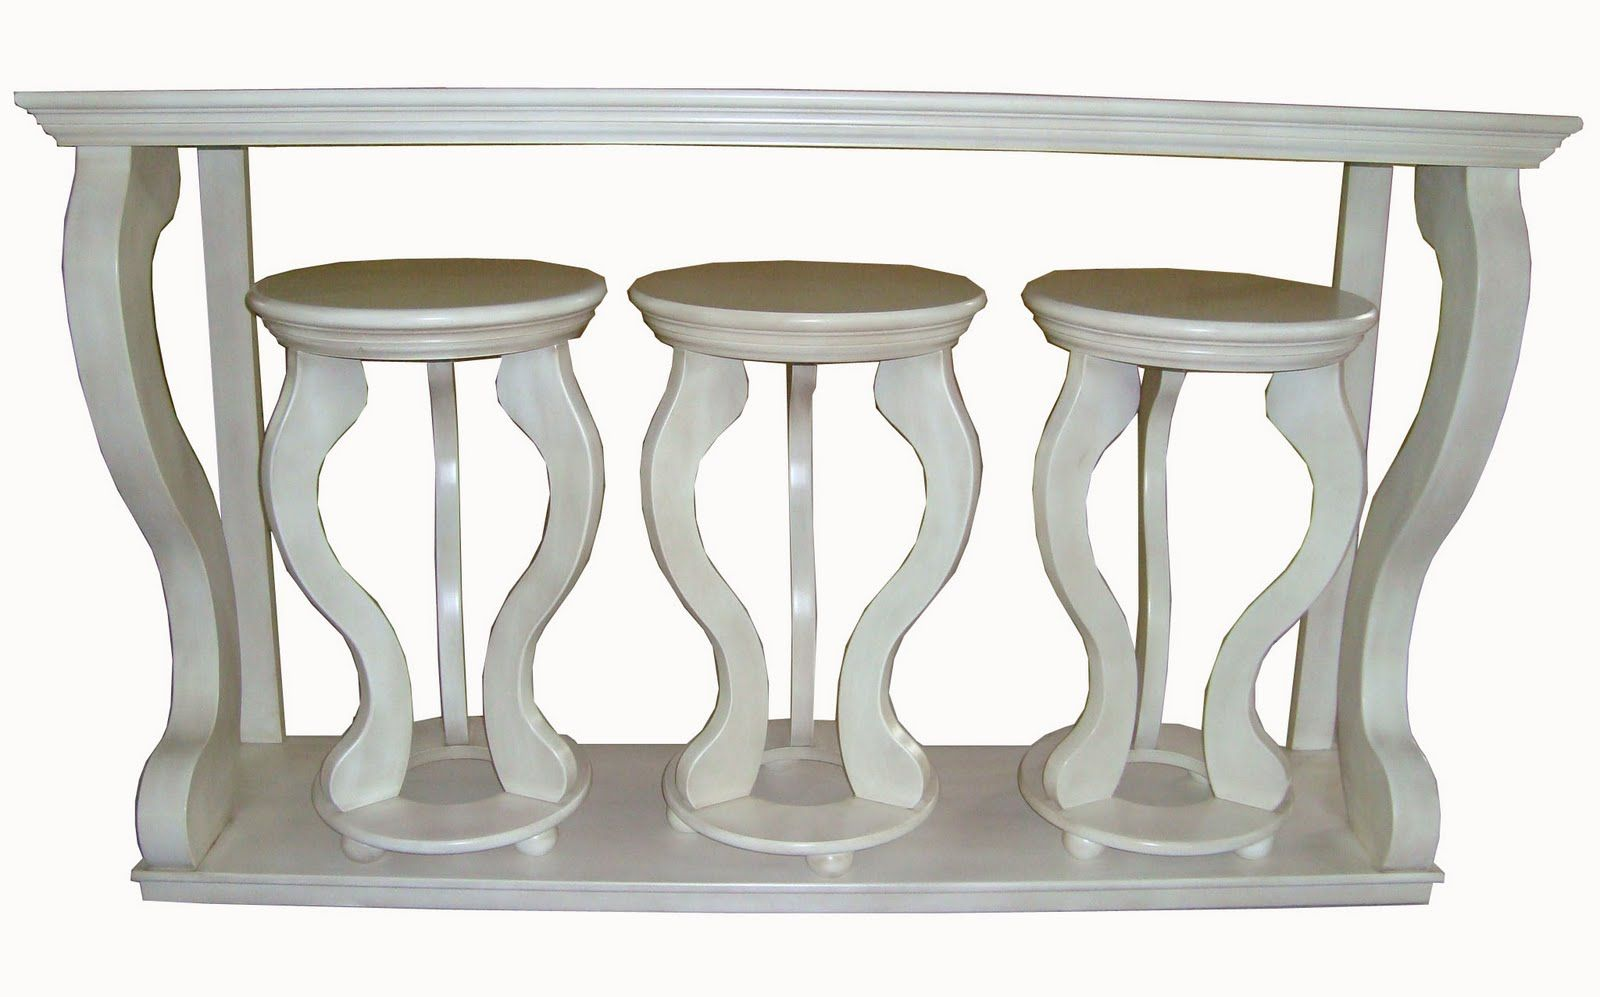 Very best Console Table with Stools Underneath | sample sale: tainoki fine  MJ16